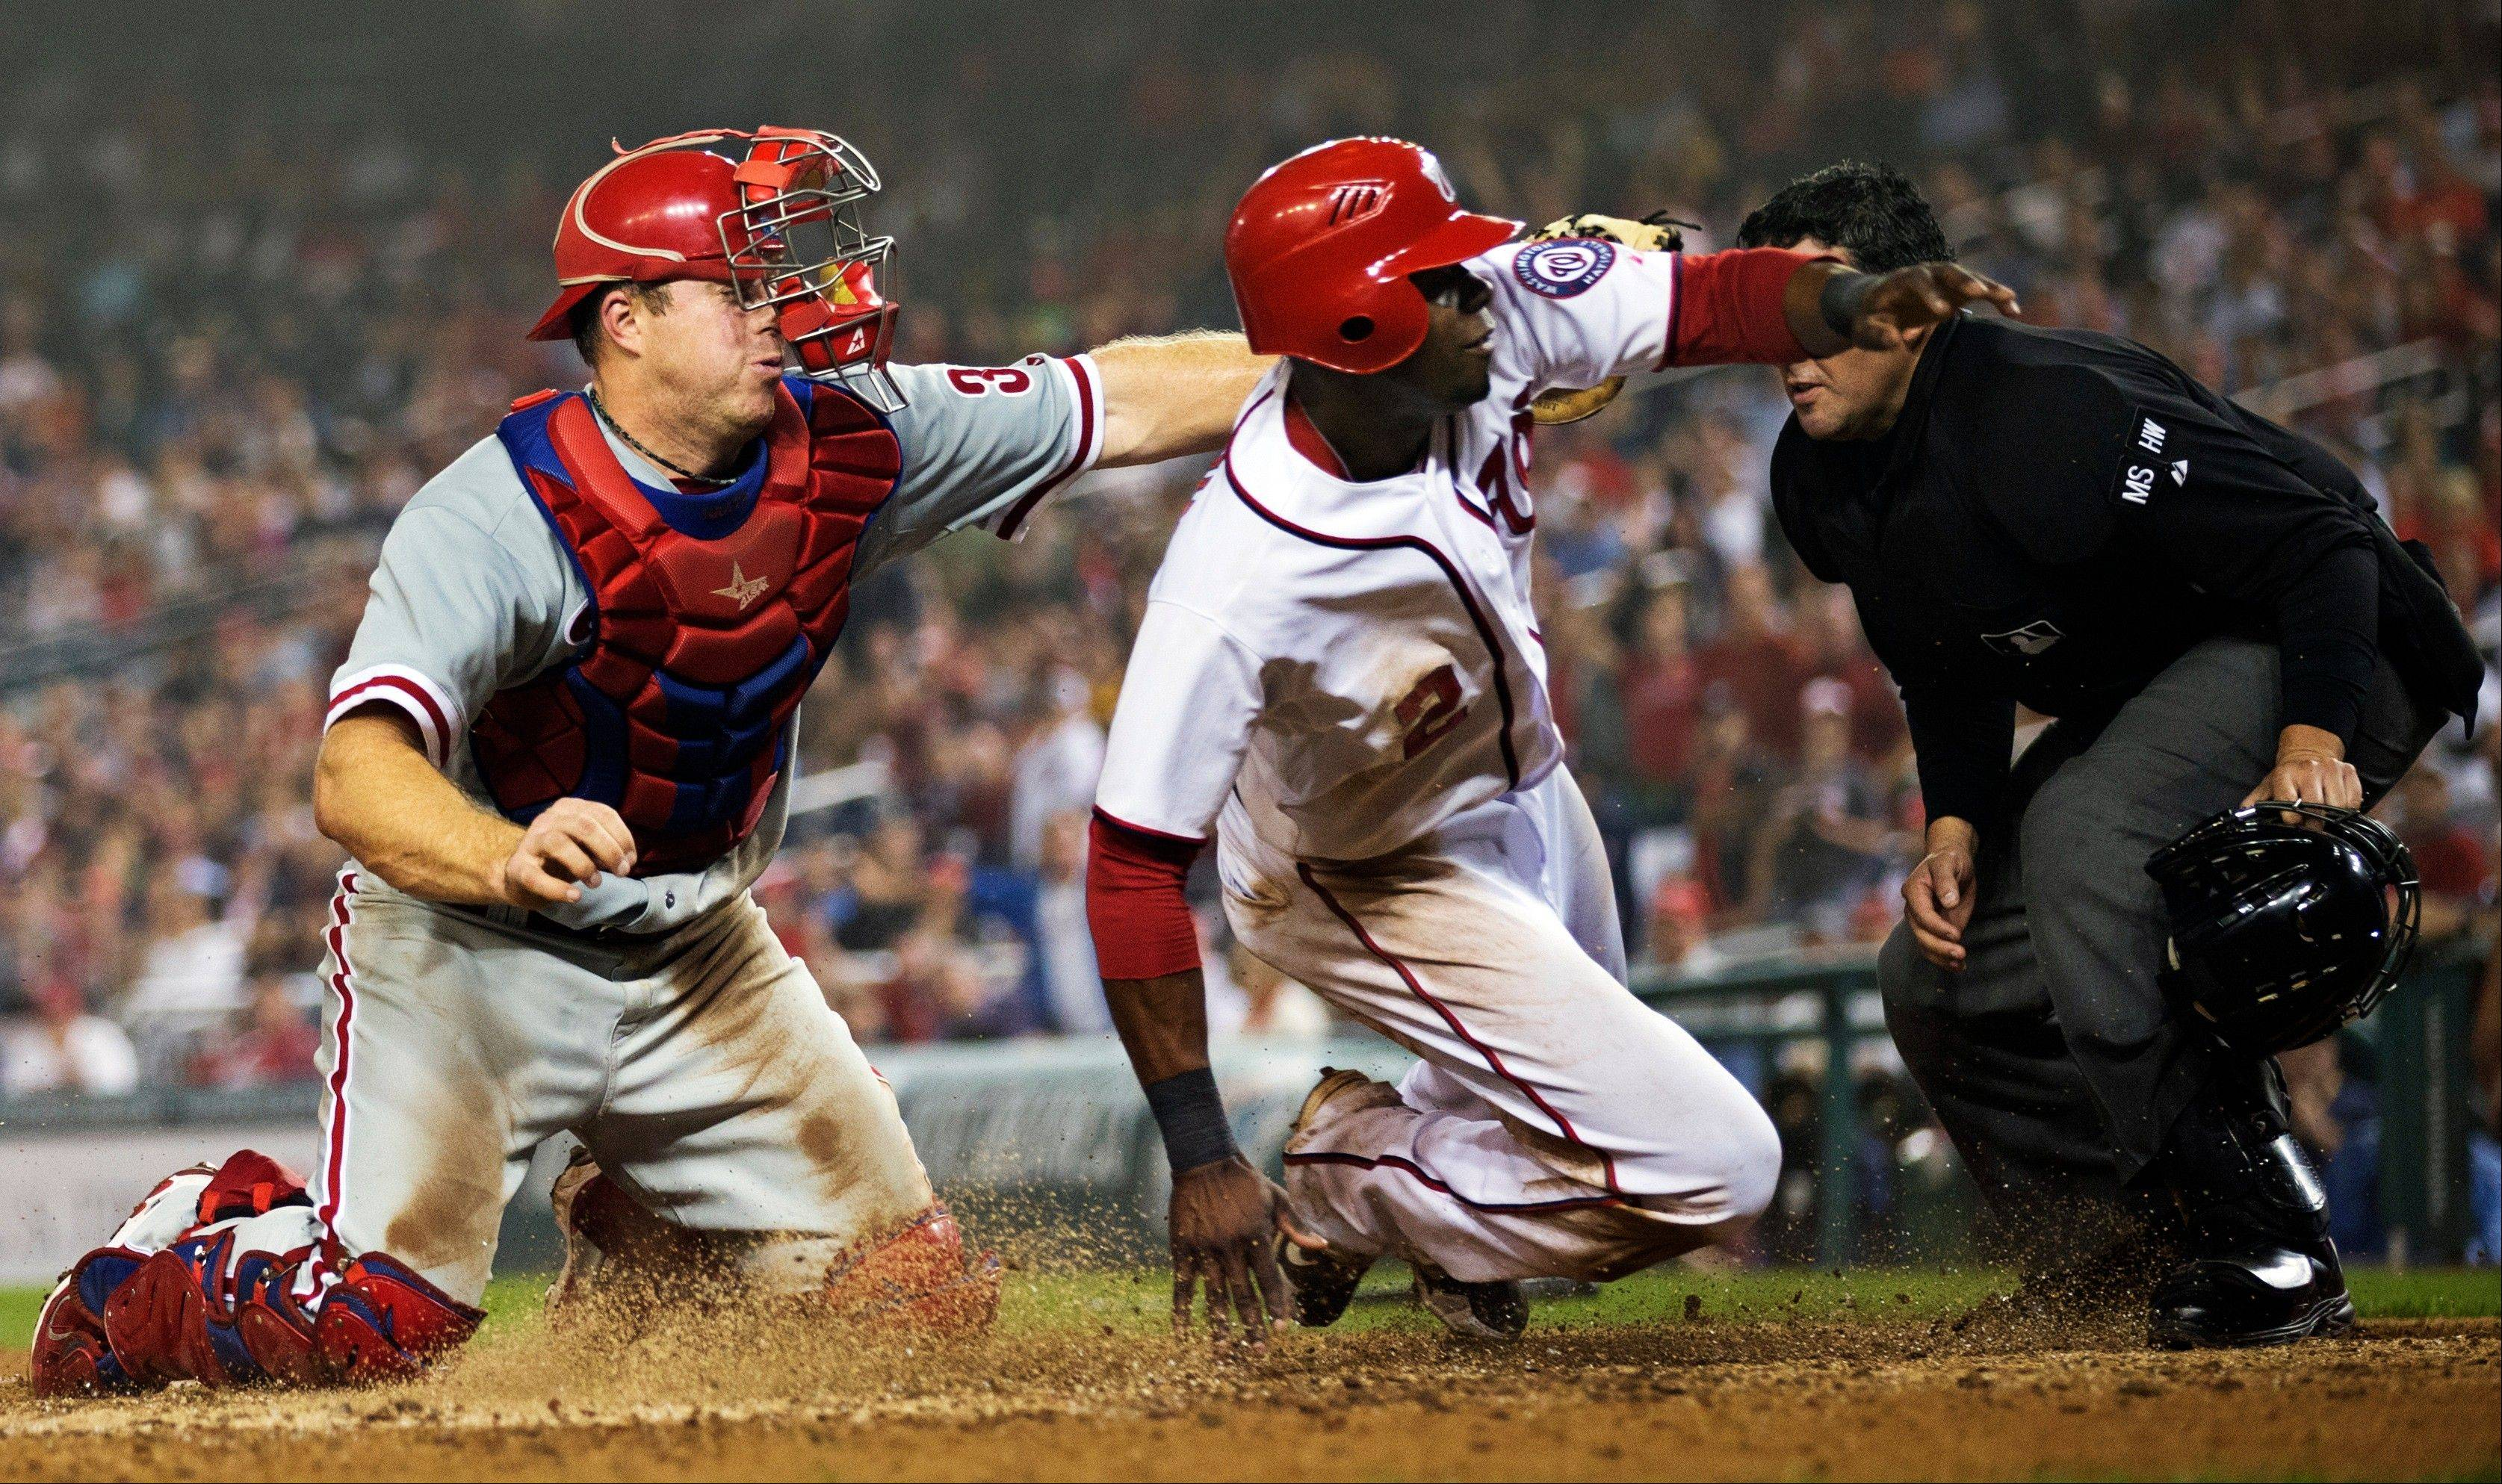 The Nationals� Roger Bernadina beats the tag of Philadelphia catcher Erik Kratz during the eighth inning Tuesday in Washington.